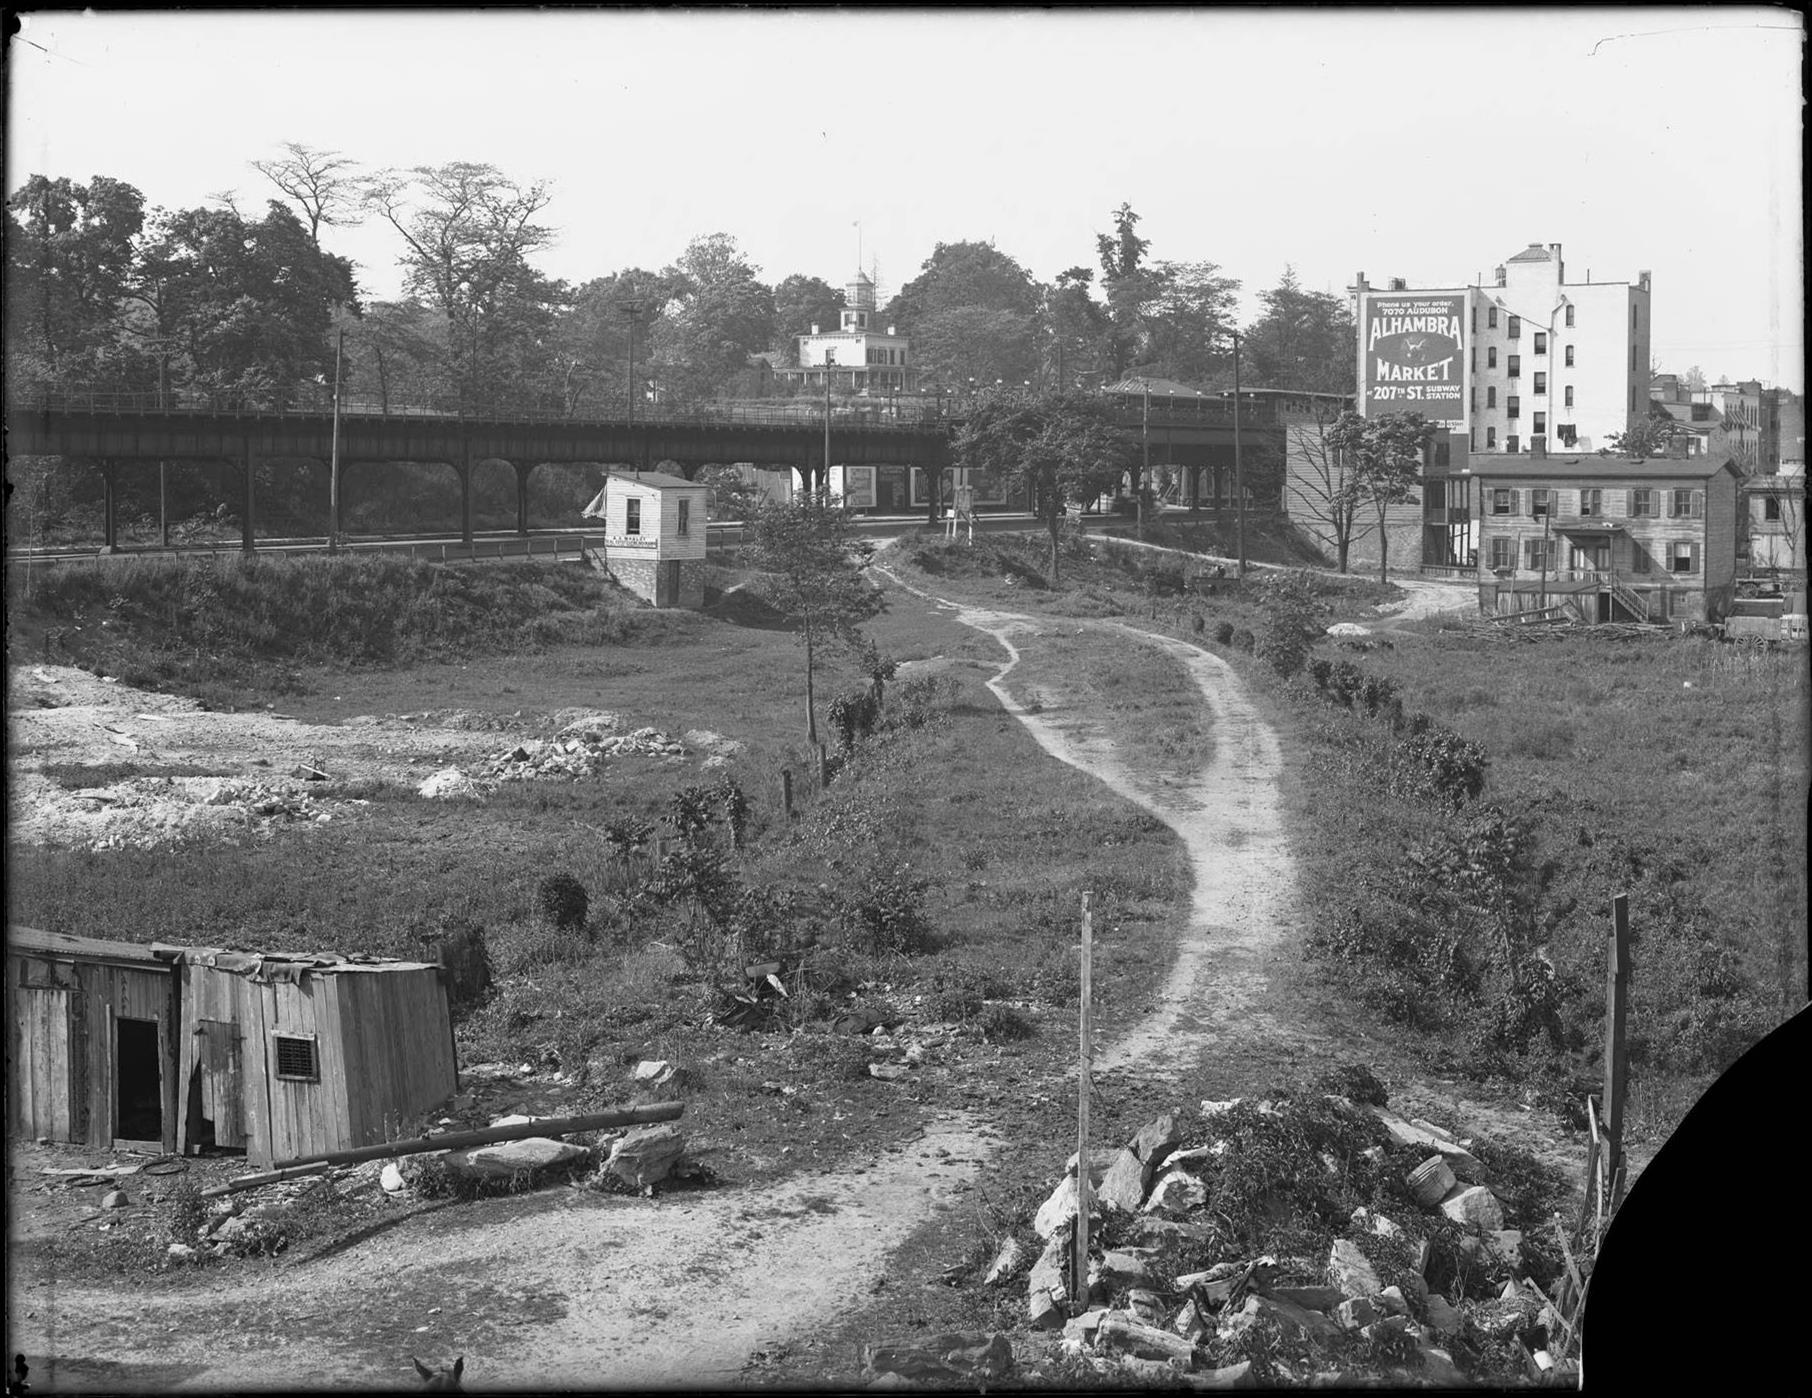 View of the old New York Central Railroad tracks, looking north from W. 230th Street, Bronx, June 2, 1916.